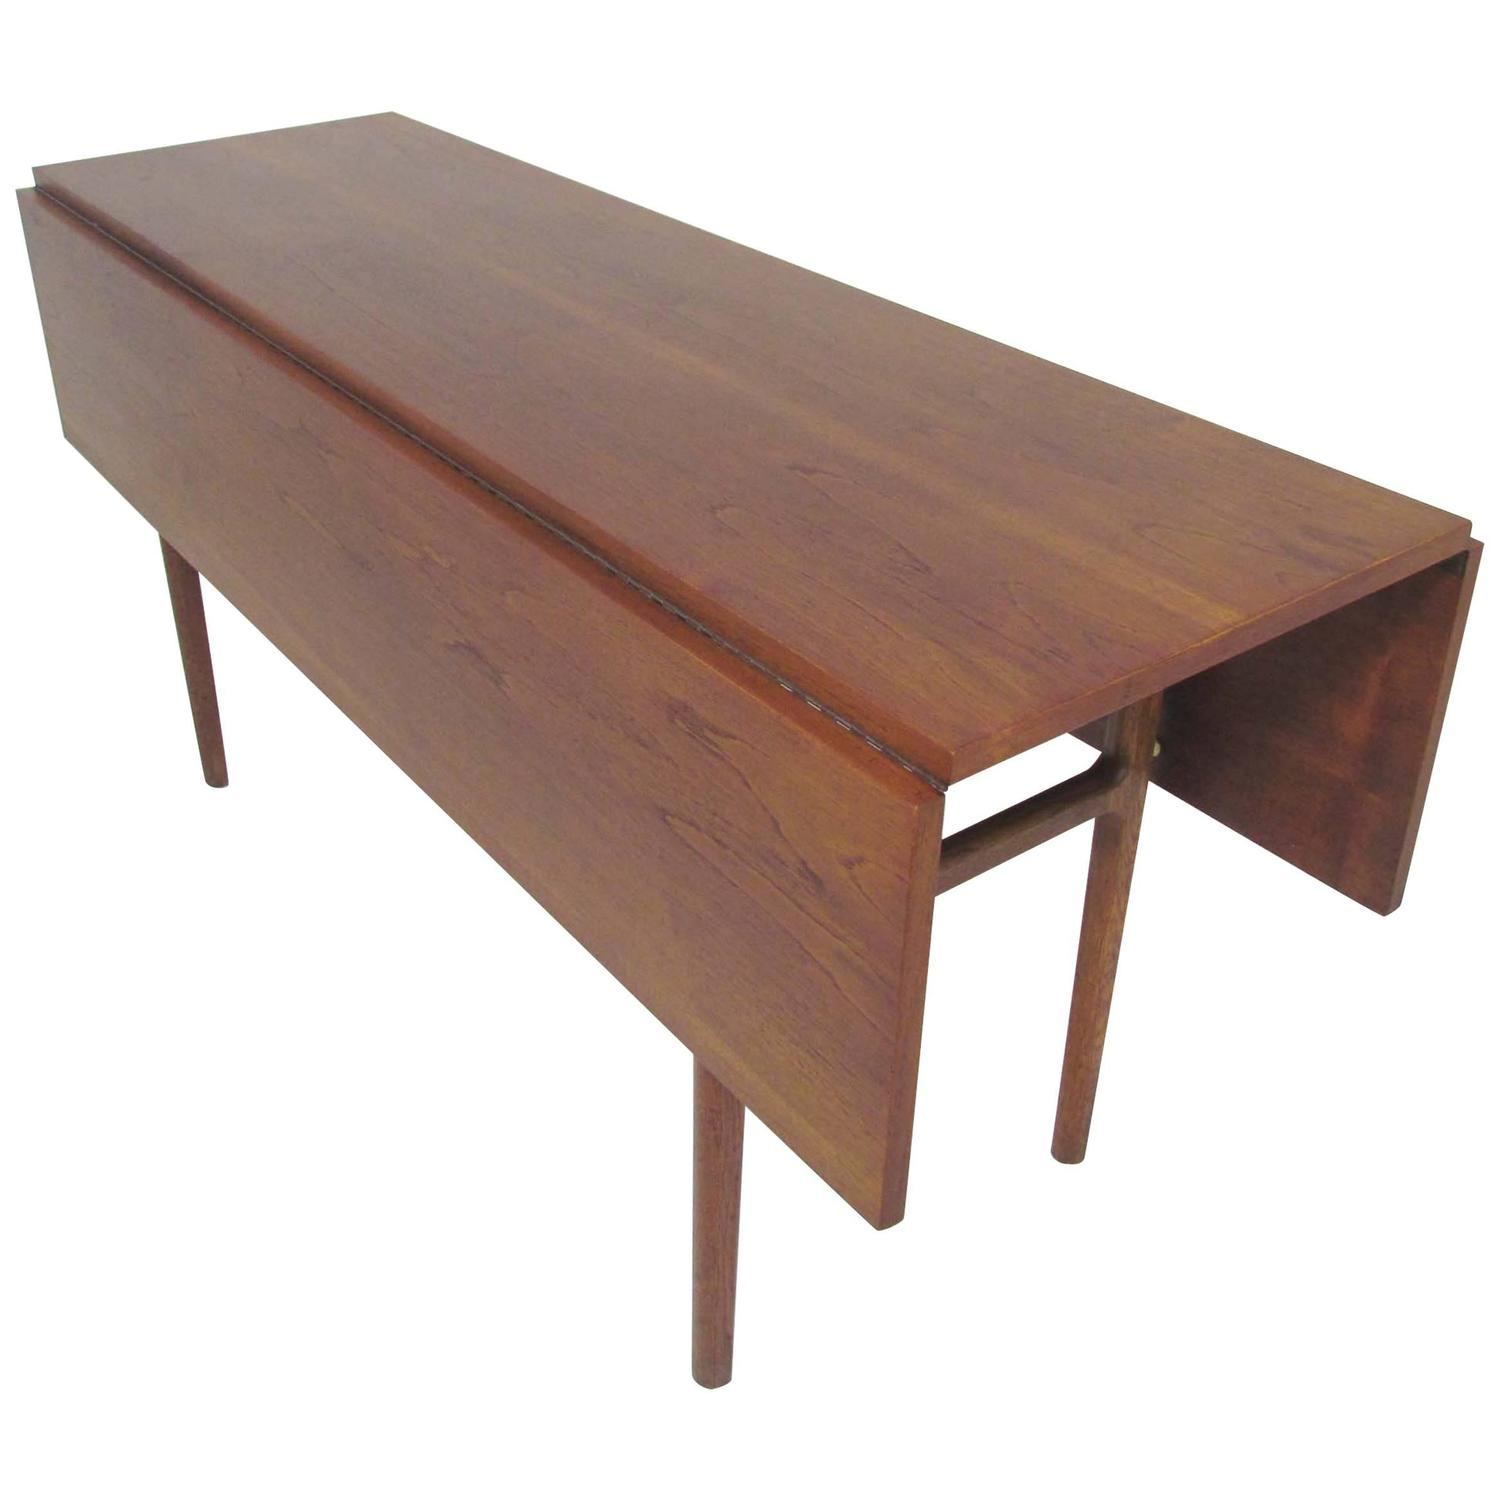 danish teak drop leaf harvest dining table circa 1950s for sale at 1stdibs. Black Bedroom Furniture Sets. Home Design Ideas